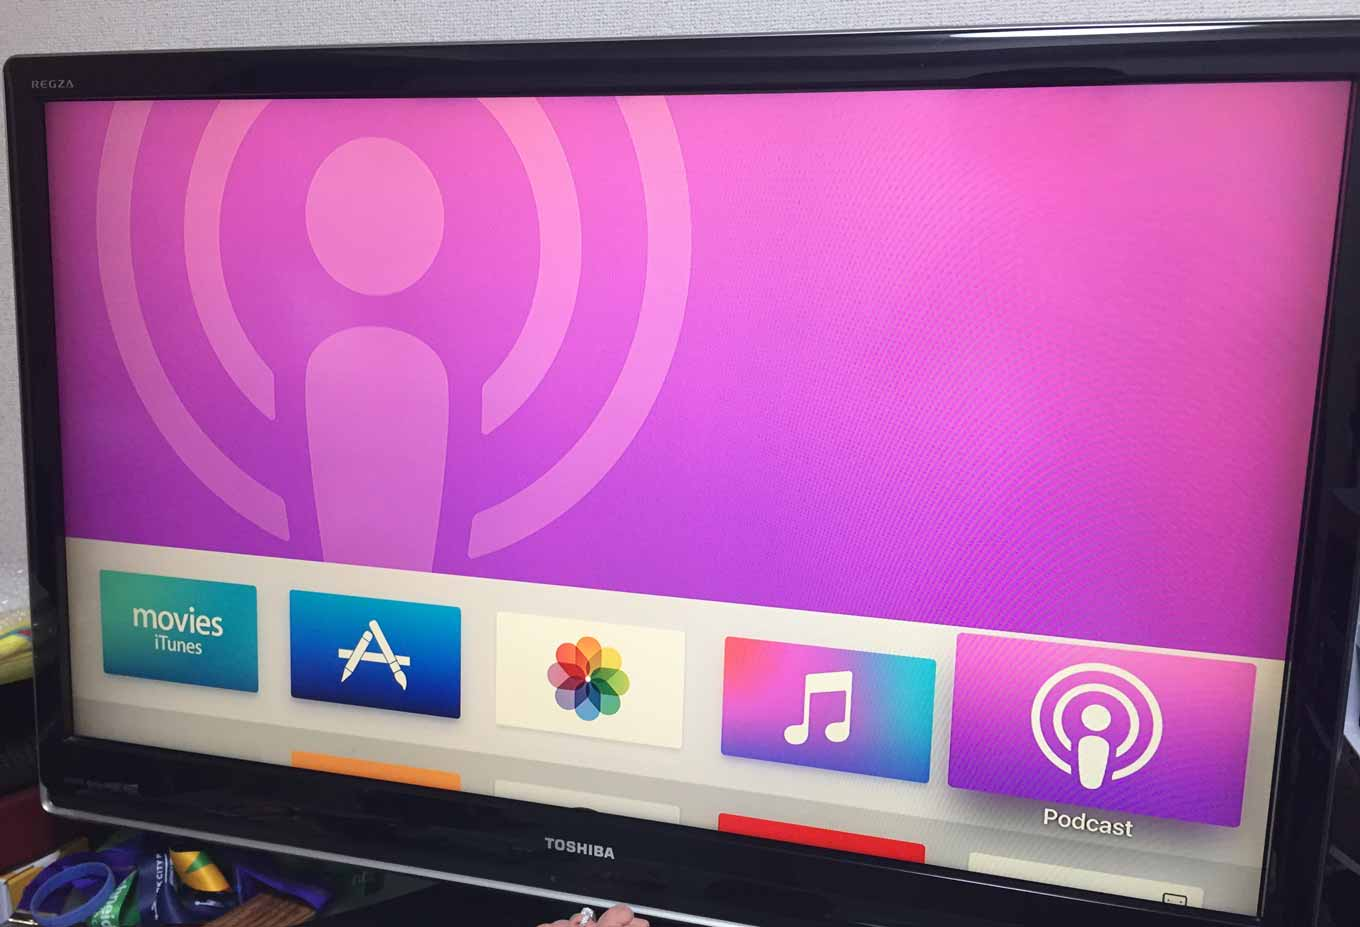 Podcastappappletv